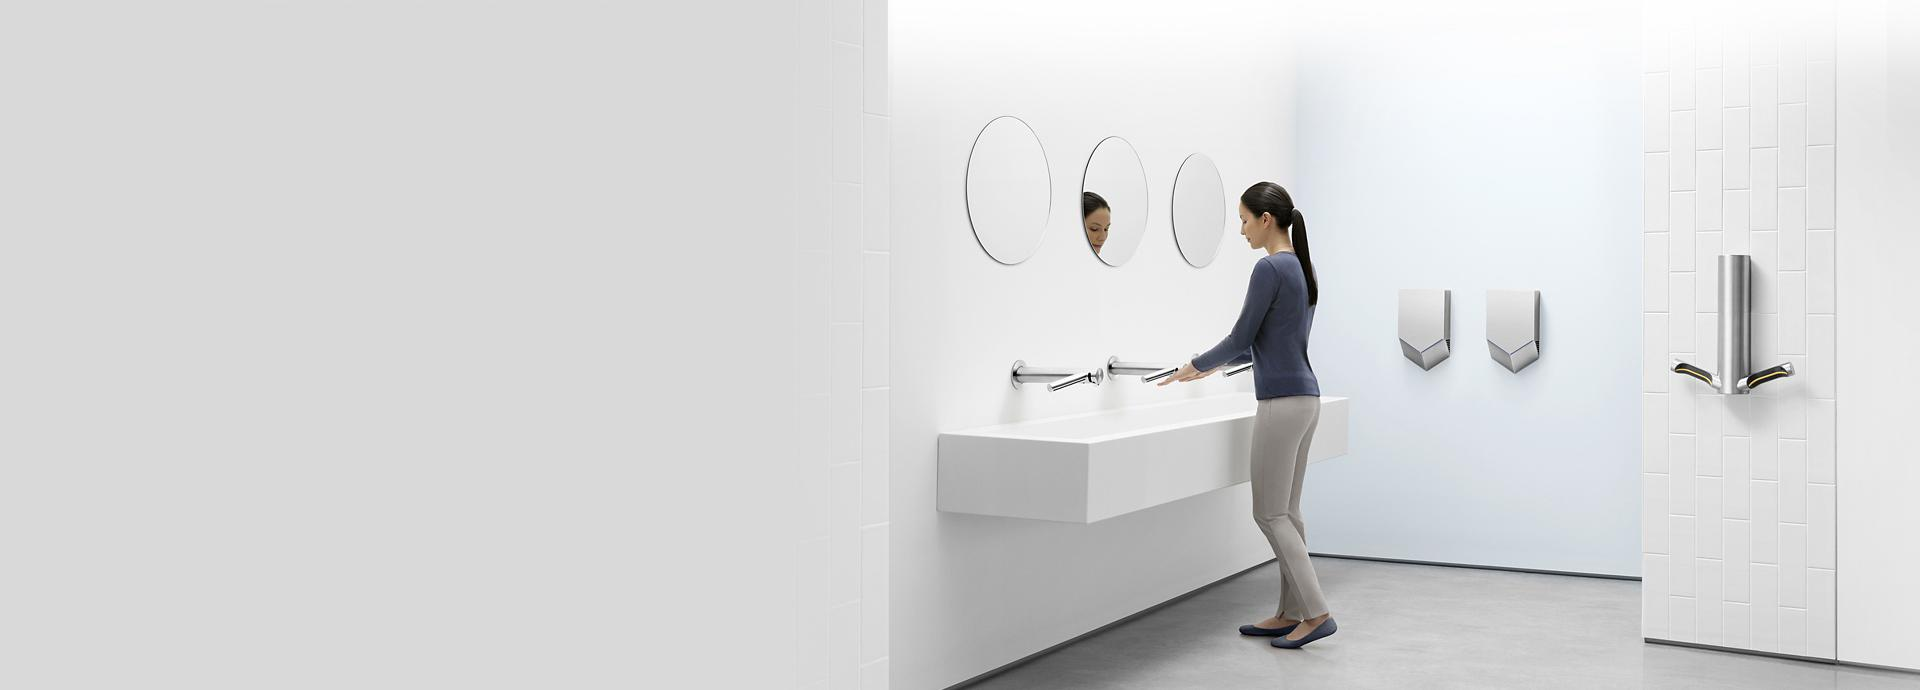 Dyson Airblade hand dryers mounted in a washroom